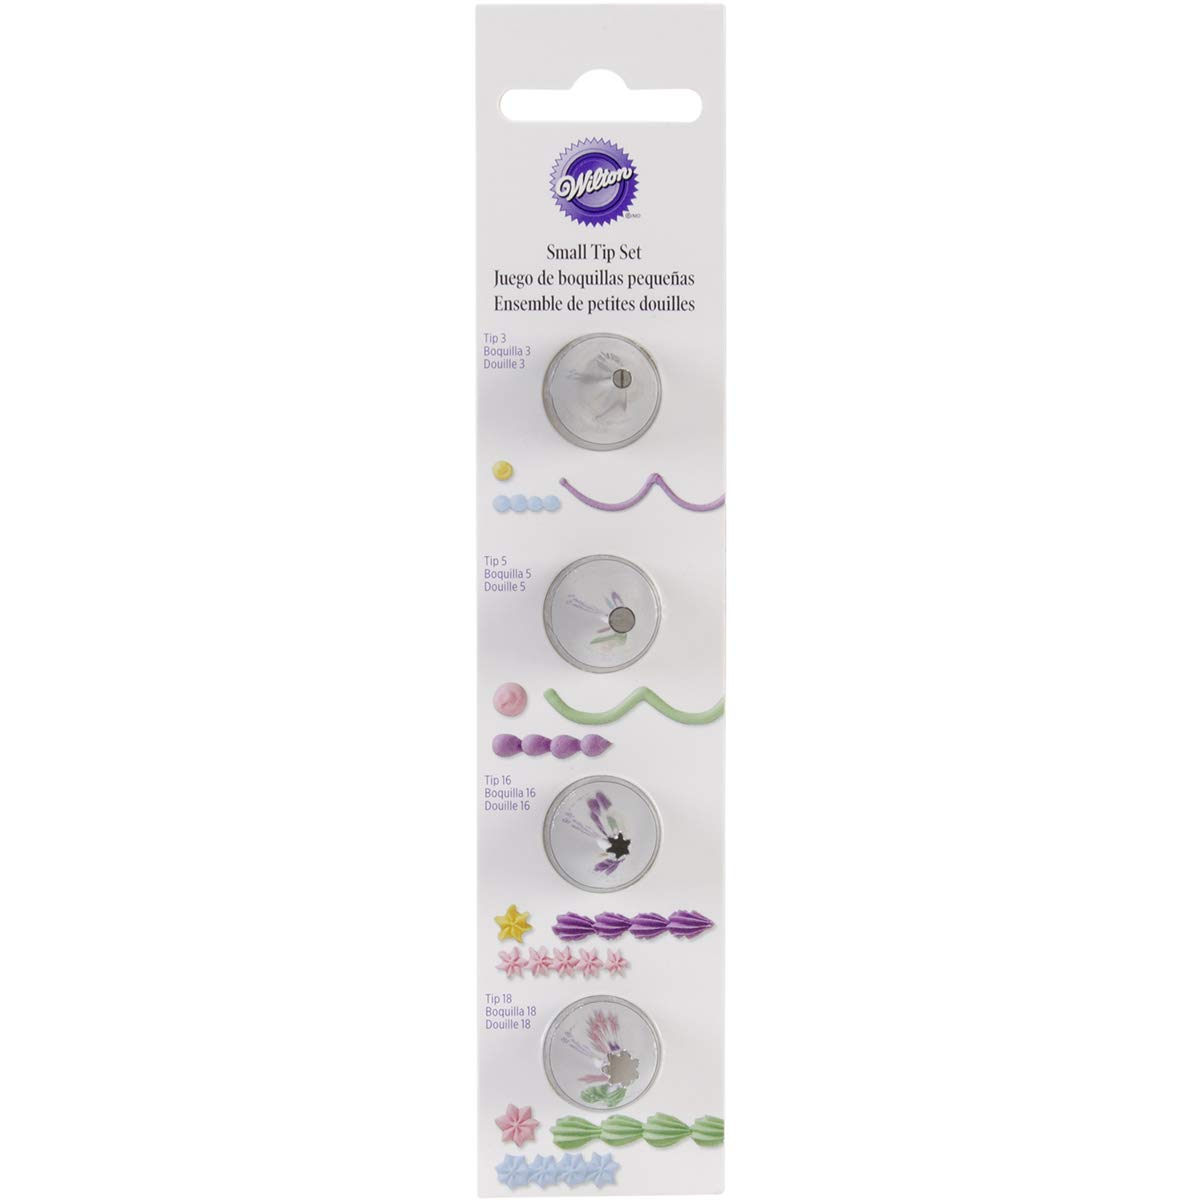 Wilton 418-1700 Small Round Piping Tip and Small Star Piping Tip Set, Stainless Steel, Silver, 4 Pieces